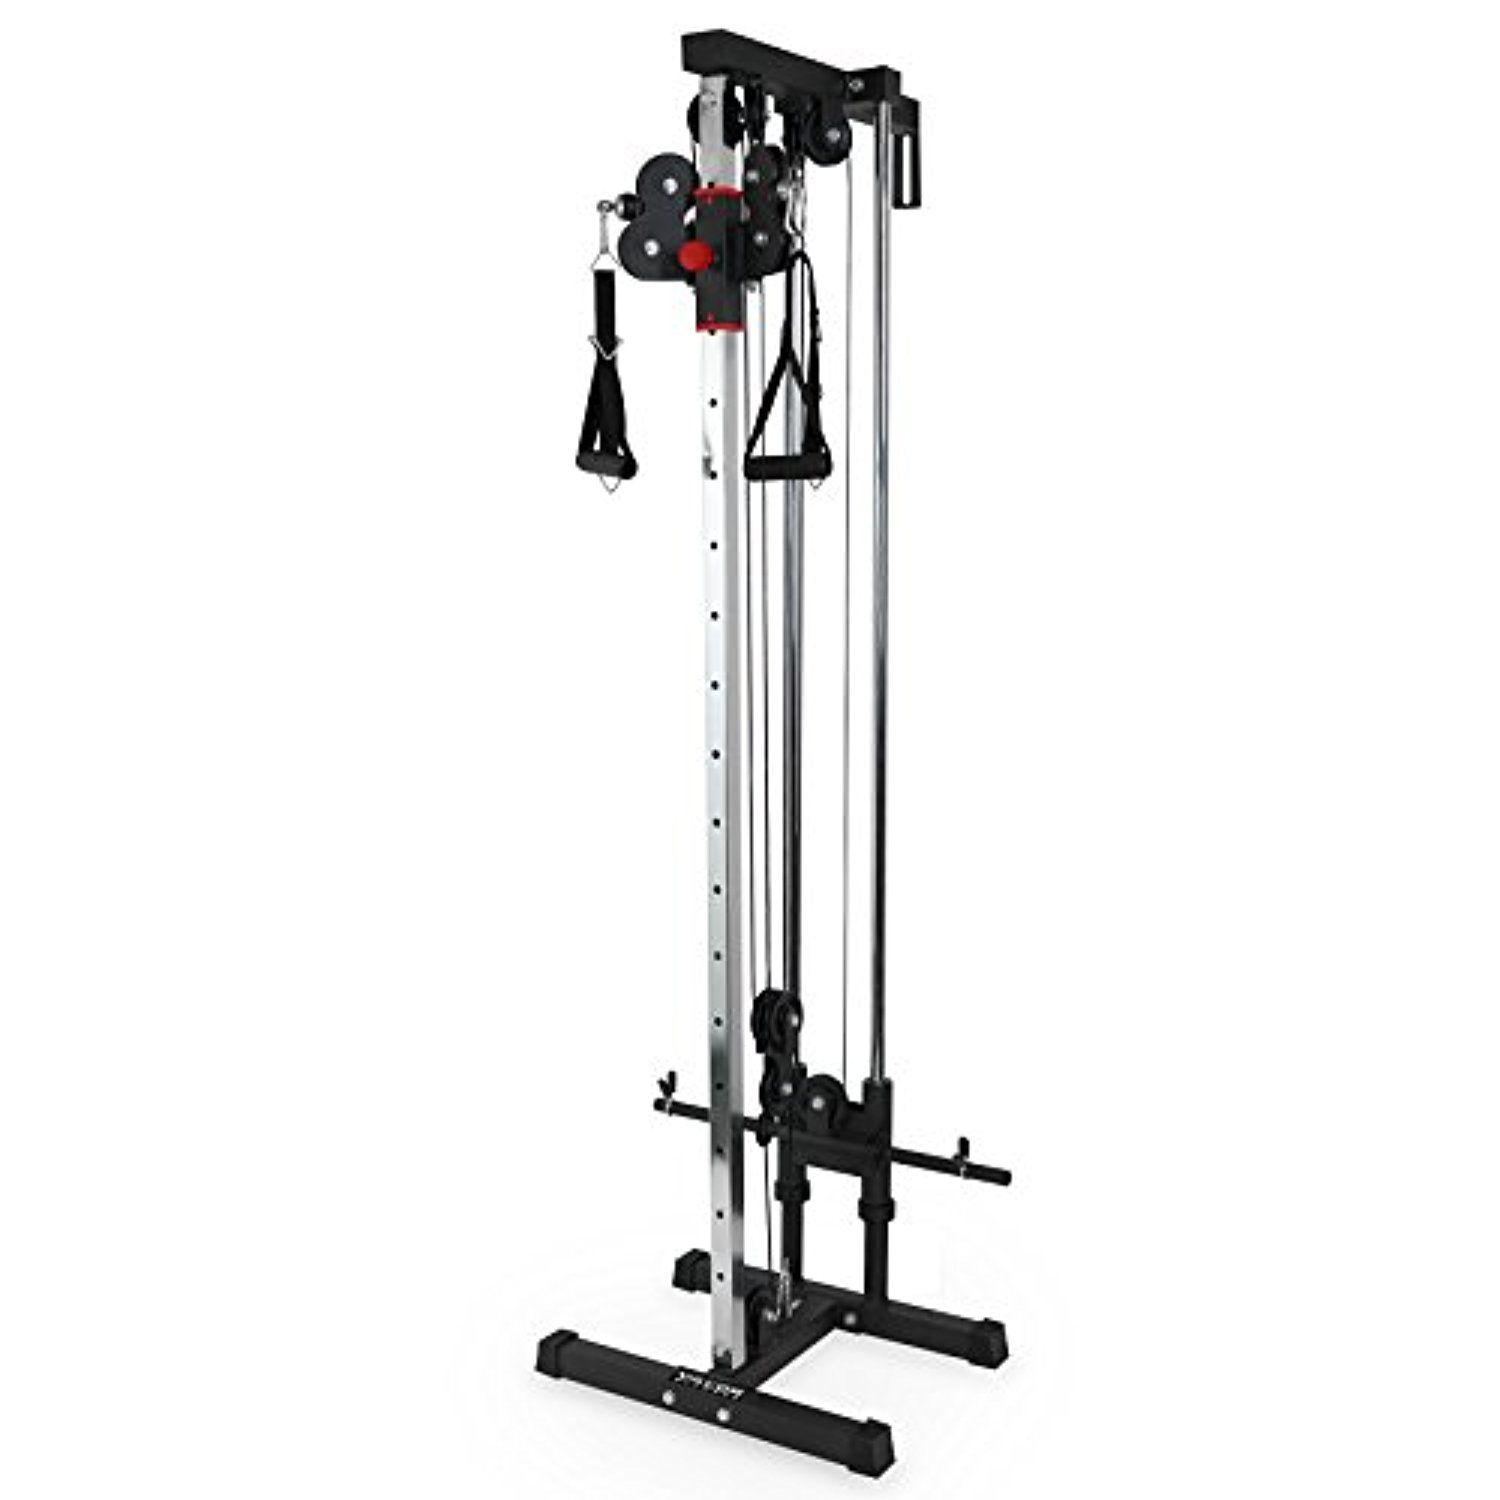 Valor Fitness Wall Mount Cable Station Awesome Products Selected Anna Churchill